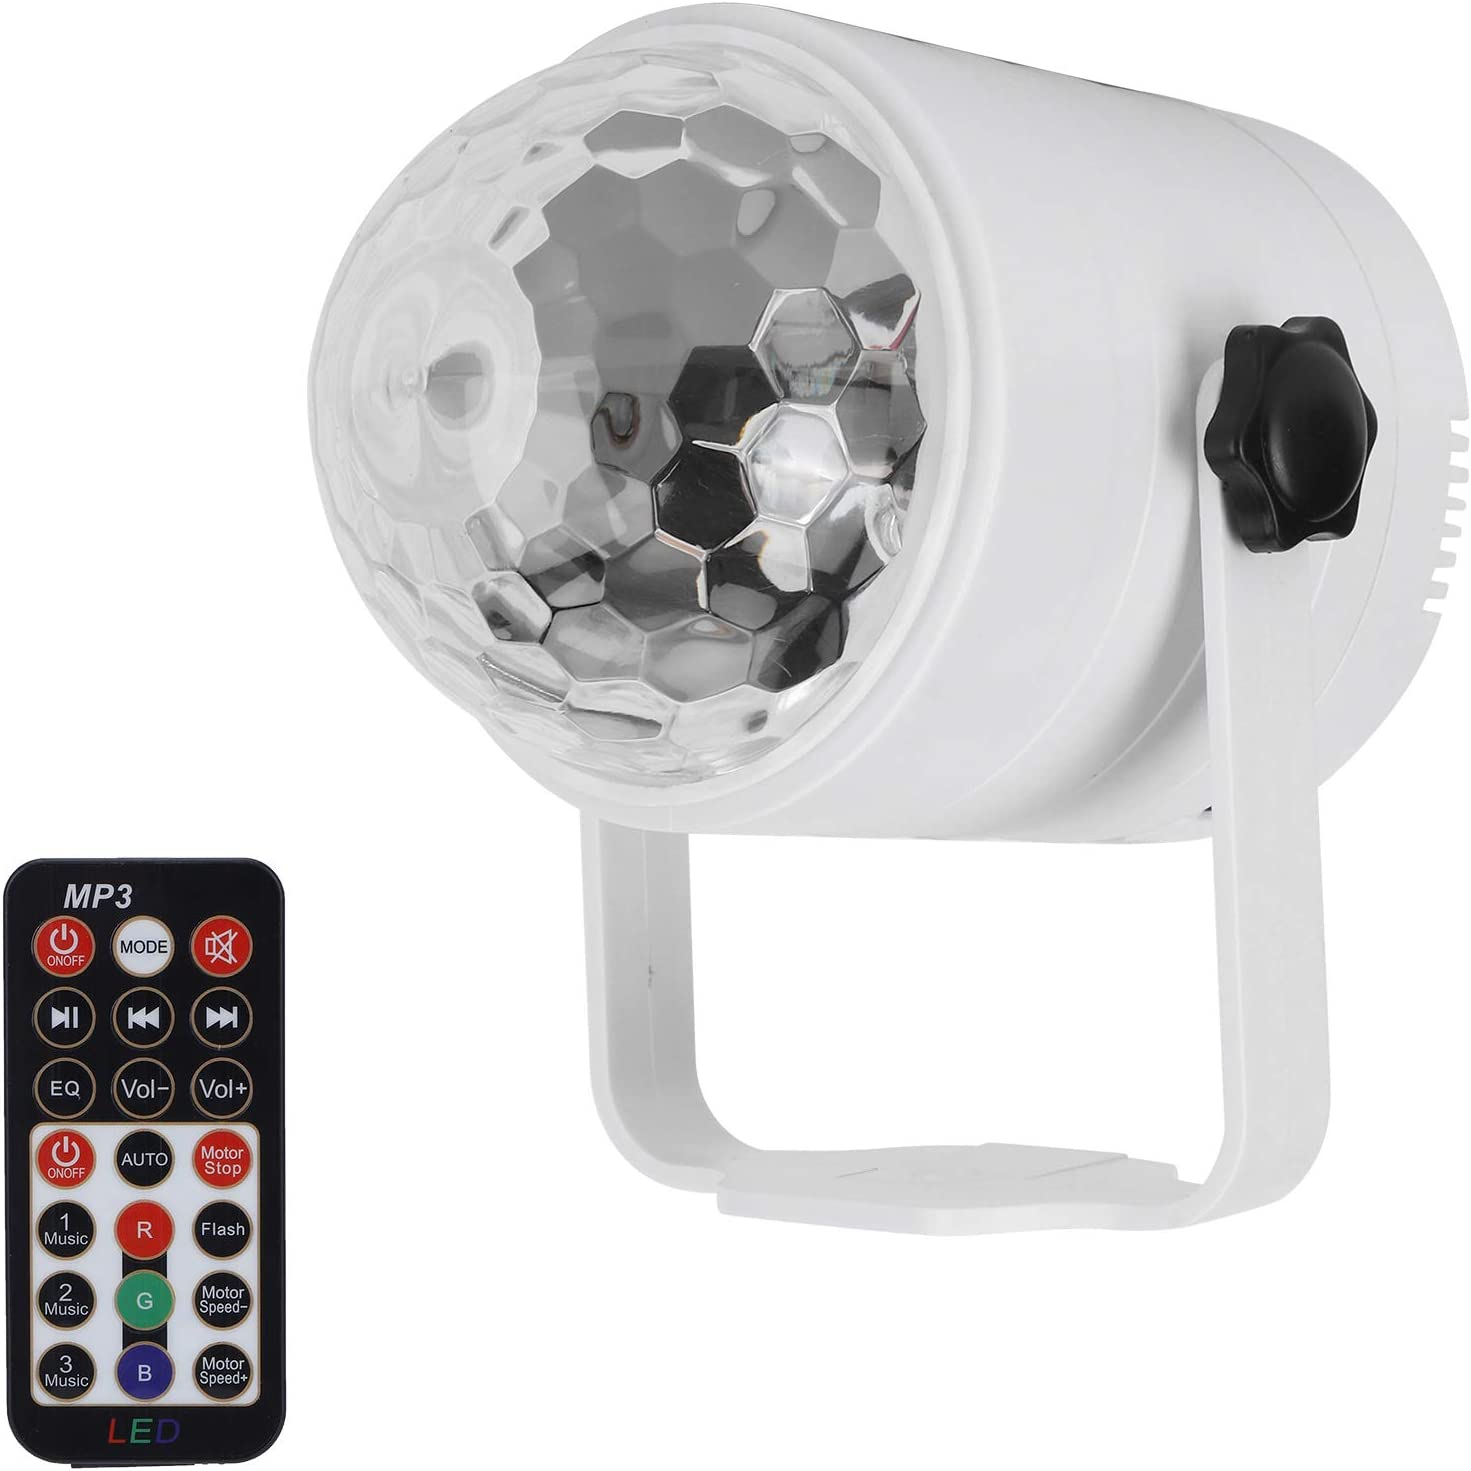 Alvinlite Party Lights with Remote Dj Control Disco Animer and ...